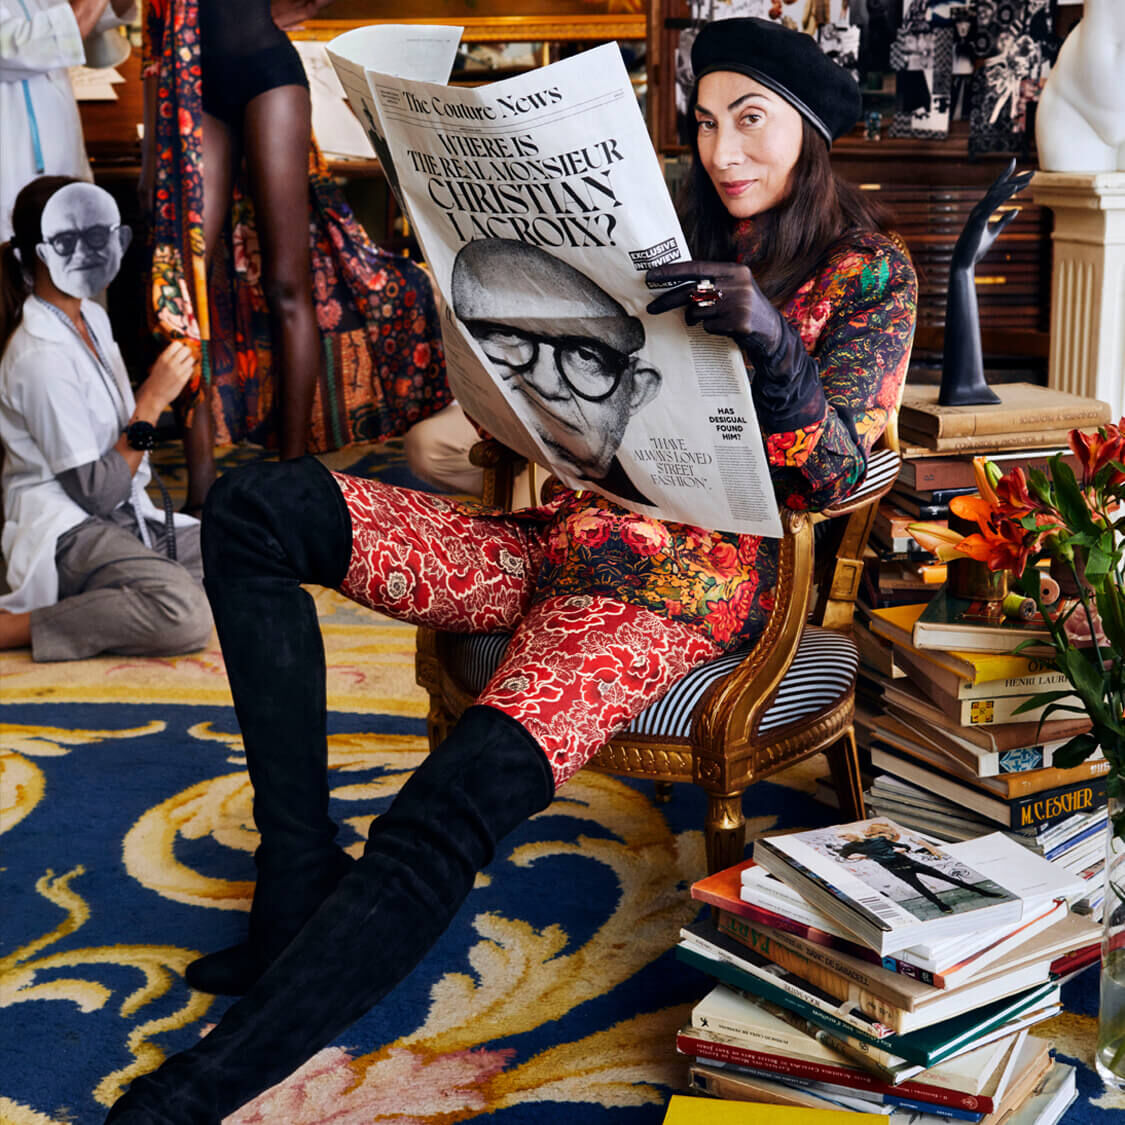 WHERE IS THE REAL MONSIEUR CHRISTIAN LACROIX?